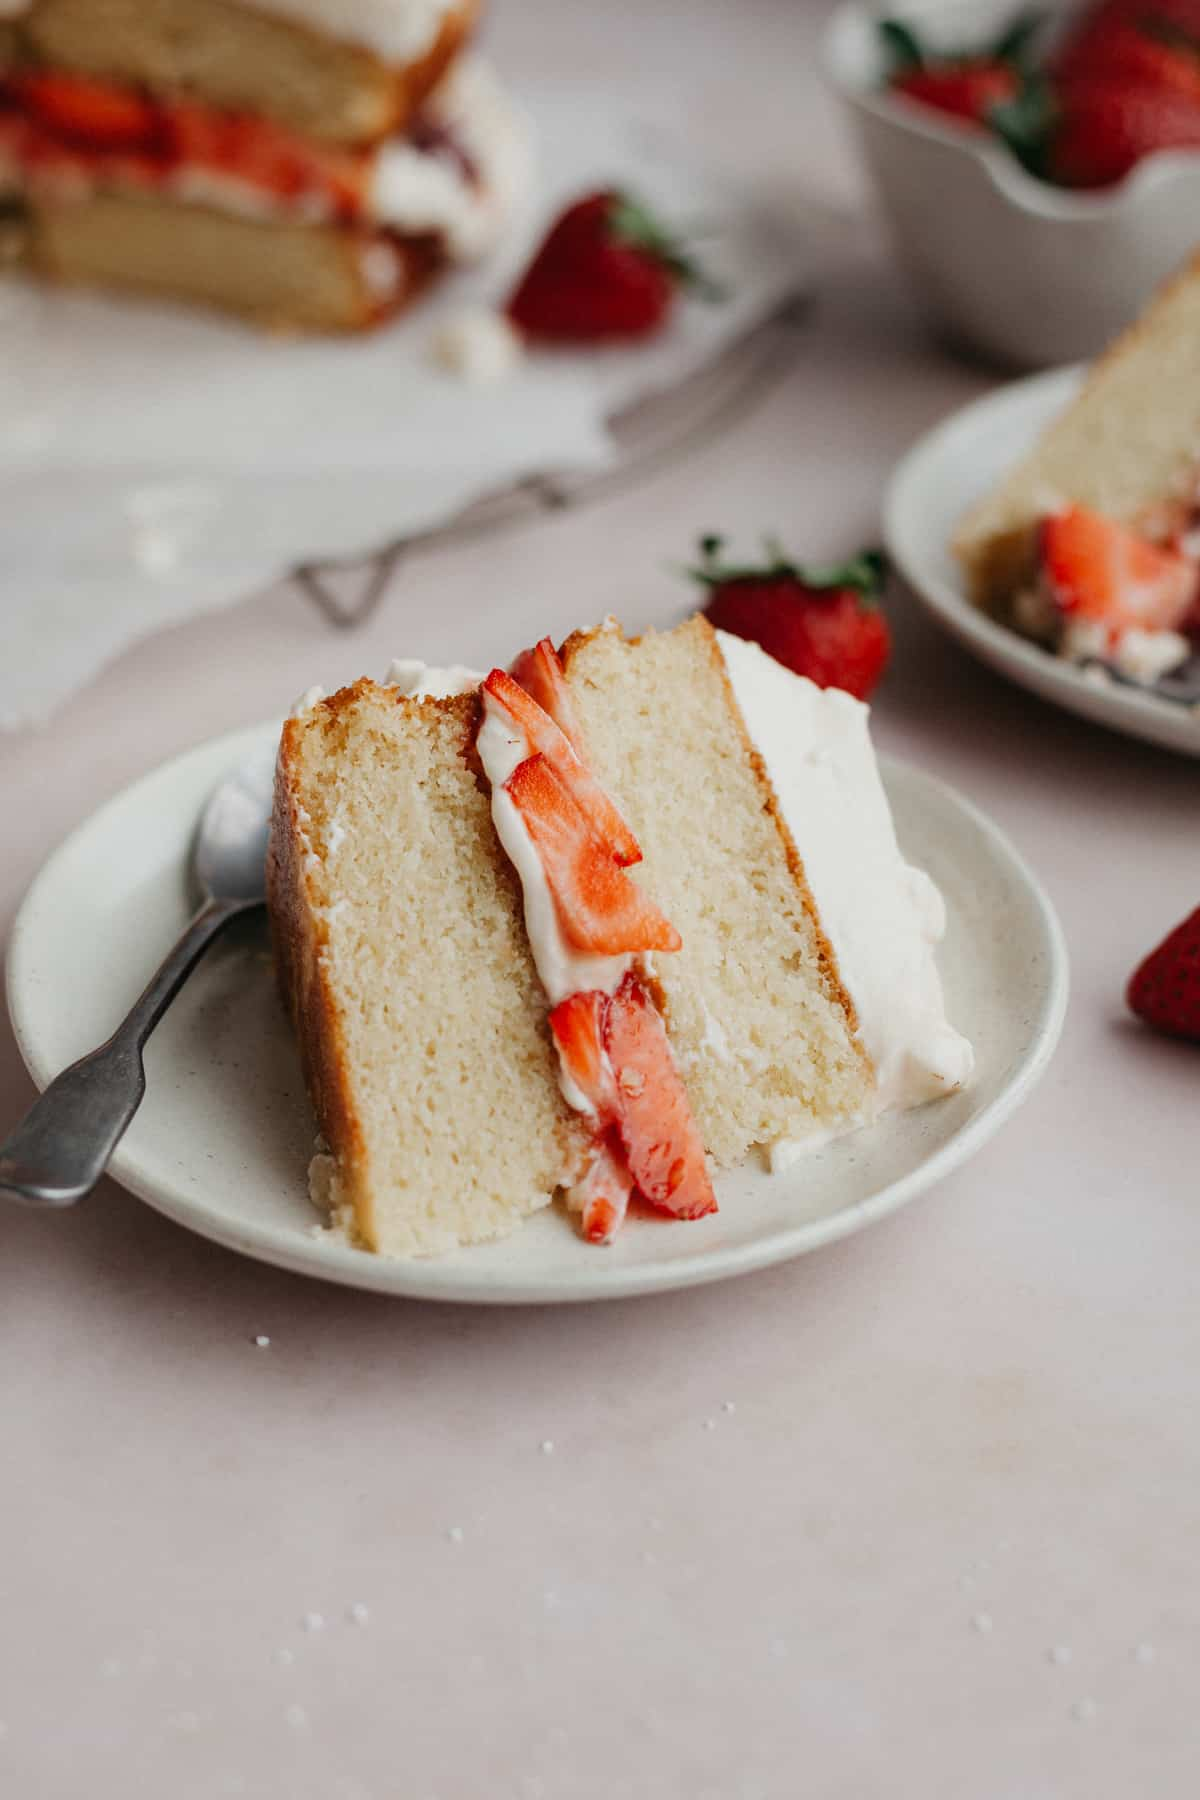 A slice of white cake that has a strawberry filling, on a small beige plate